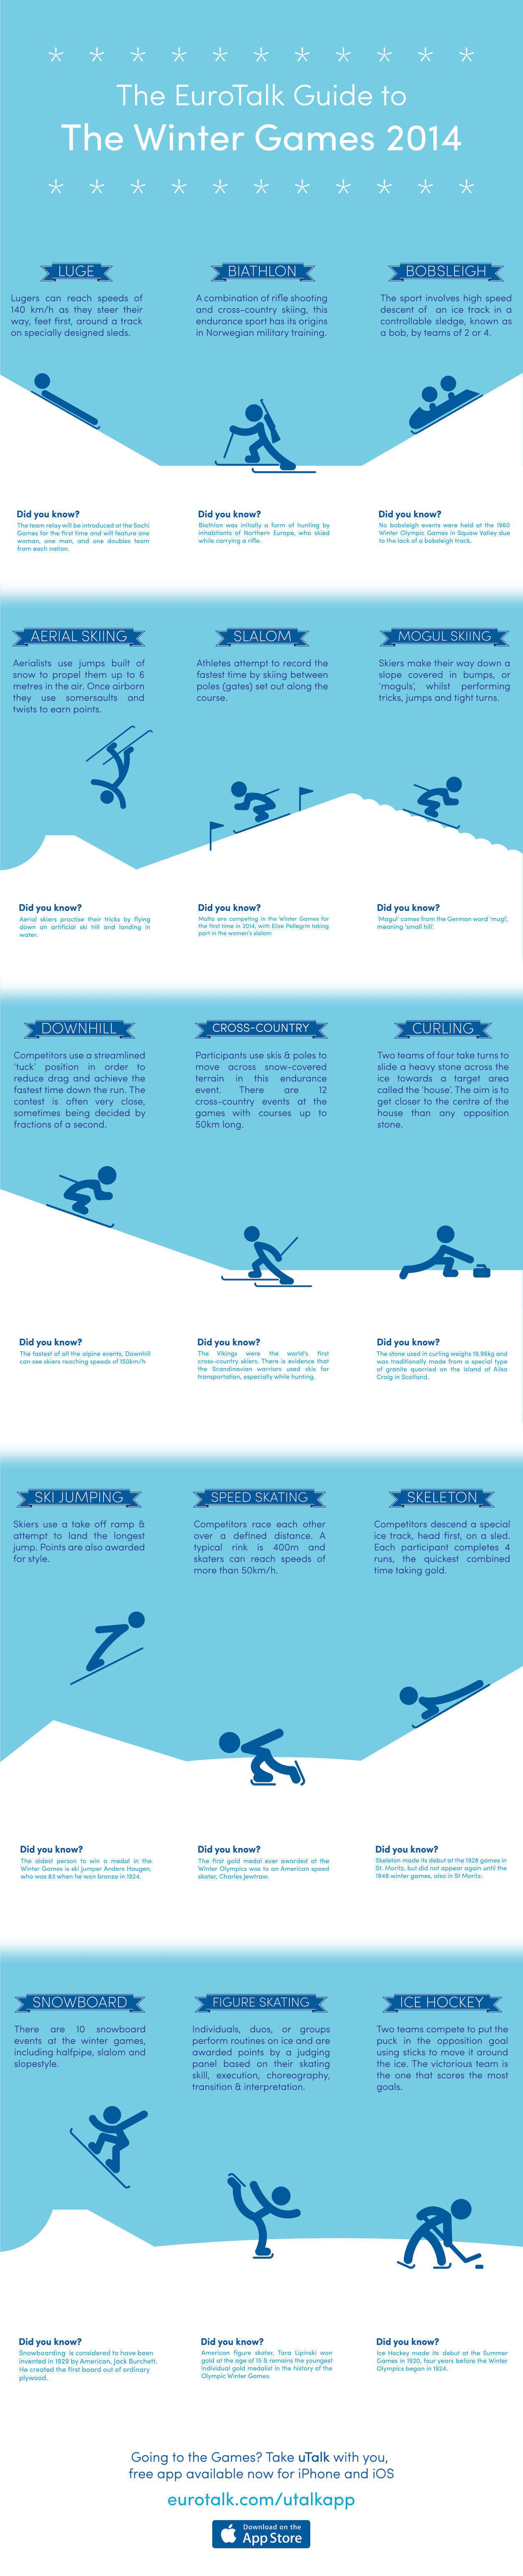 The EuroTalk Guide to the Winter Olympics